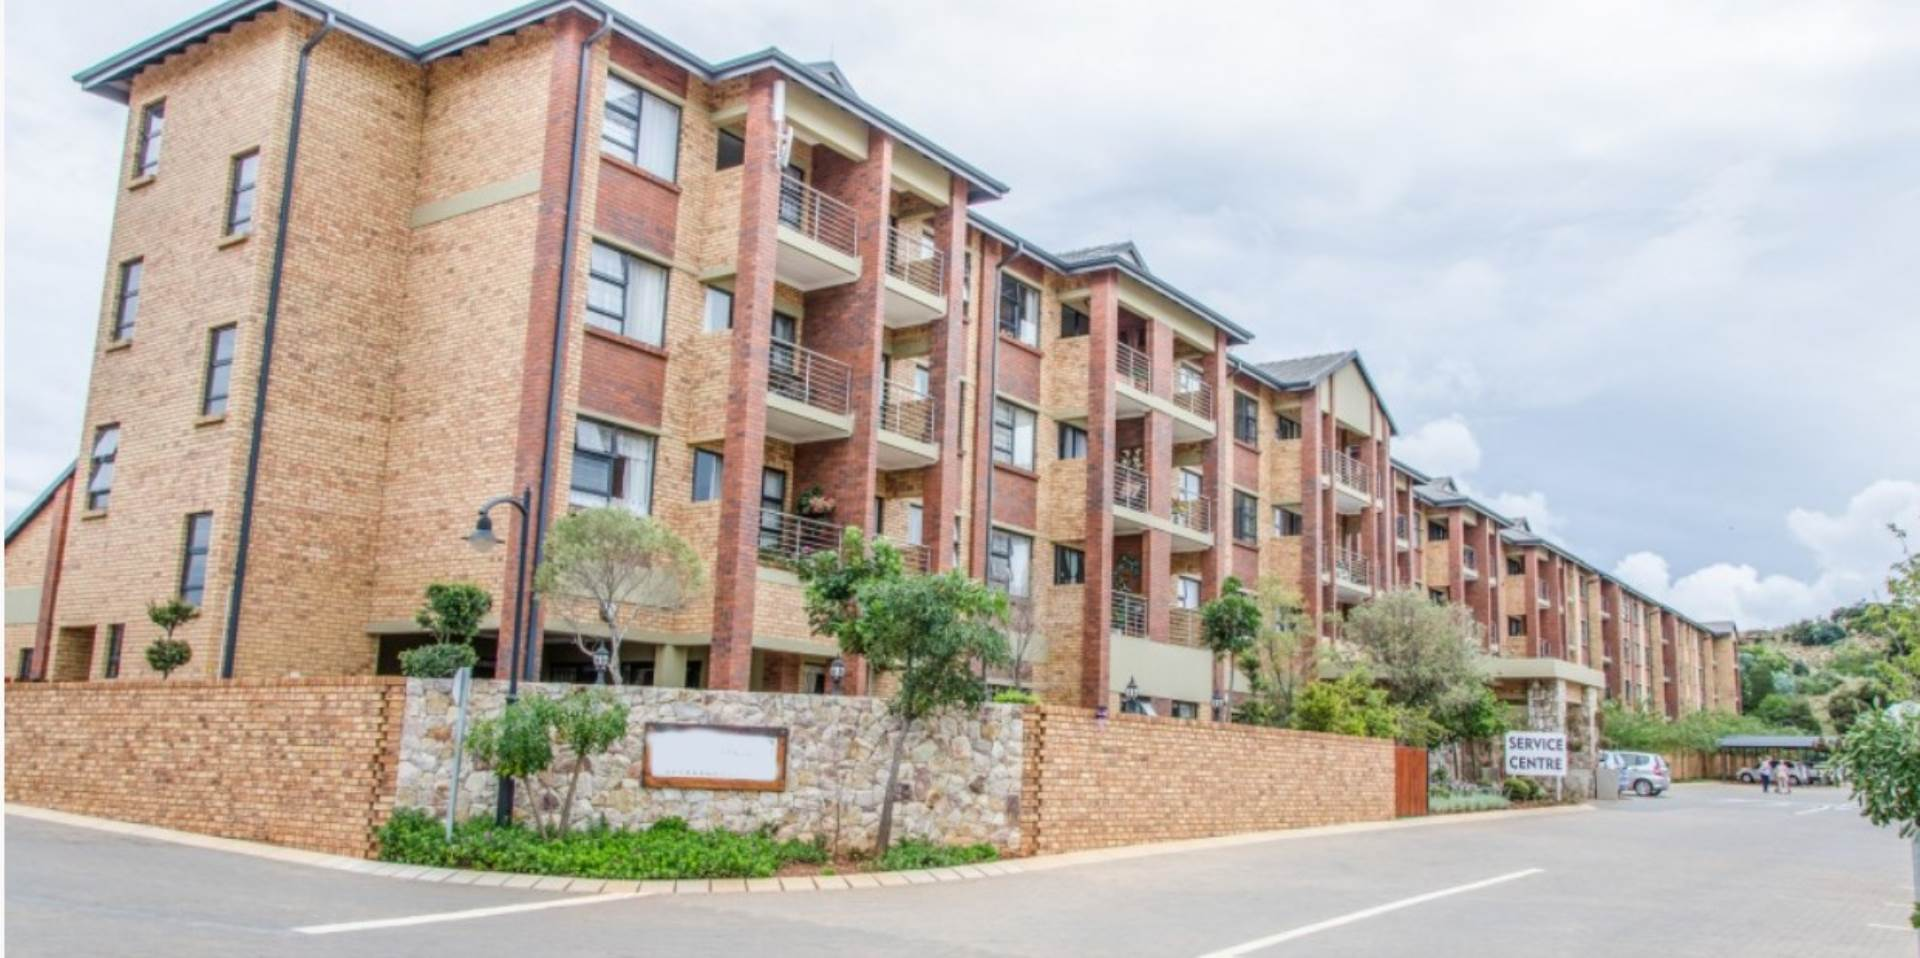 1 Bedroom Retirement Village in Olympus, Pretoria For Sale for R 945,000  #1097150